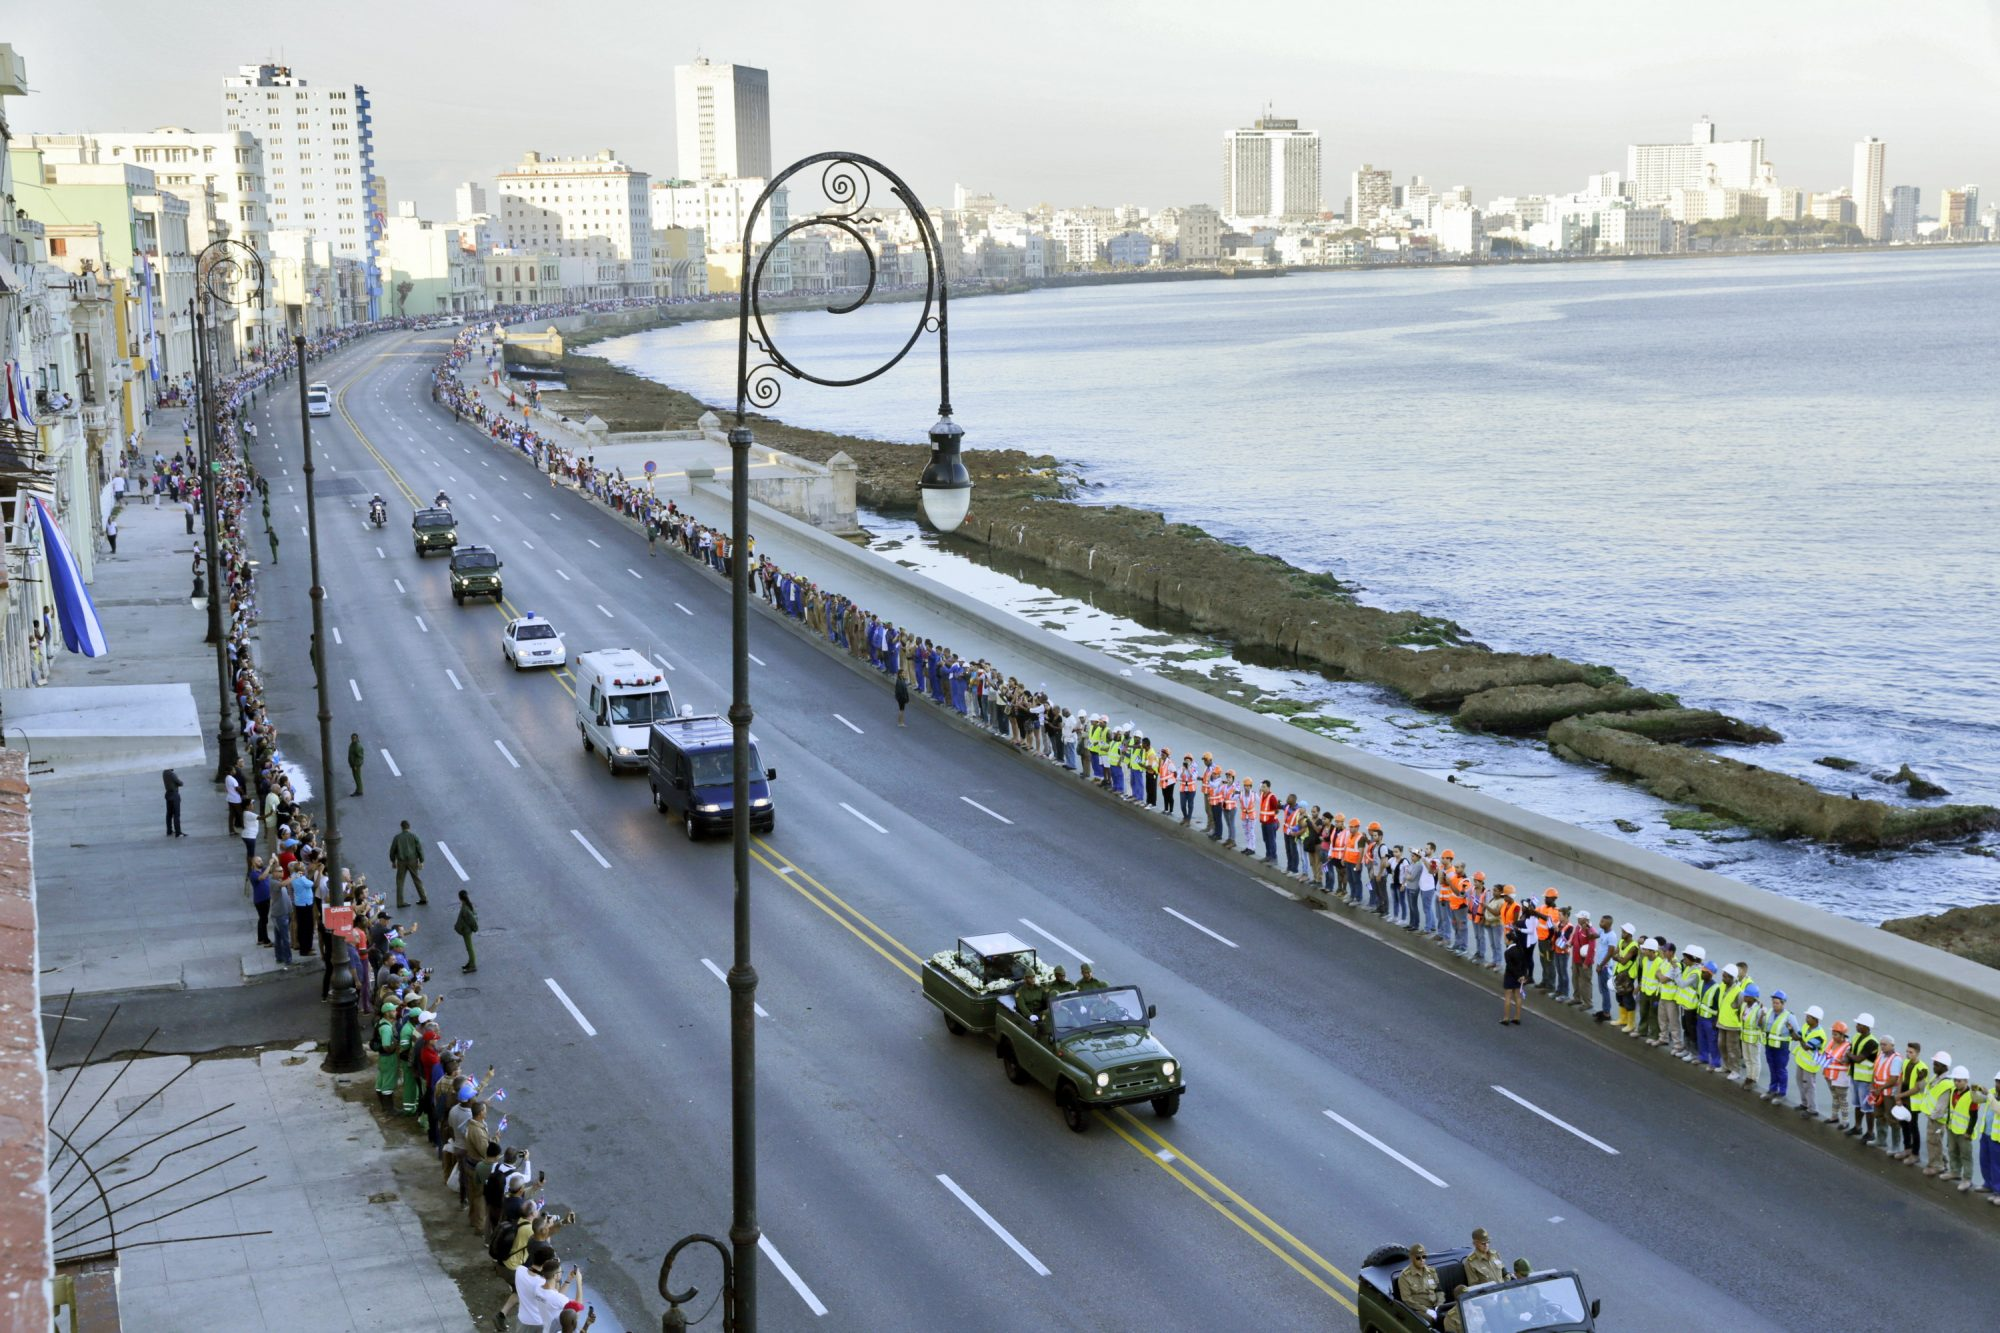 HAVANA NOV30: The caravan carrying the ashes of late Fidel Castro is driving along the Malecon waterfront, on November 30, 2016, in Havana, Cuba. Castros remains will be transported from Havana to Santiago de Cuba where Castro will be buried on December 4, 2016. (Photo by Sven Creutzmann/Mambo photo/Getty Images)